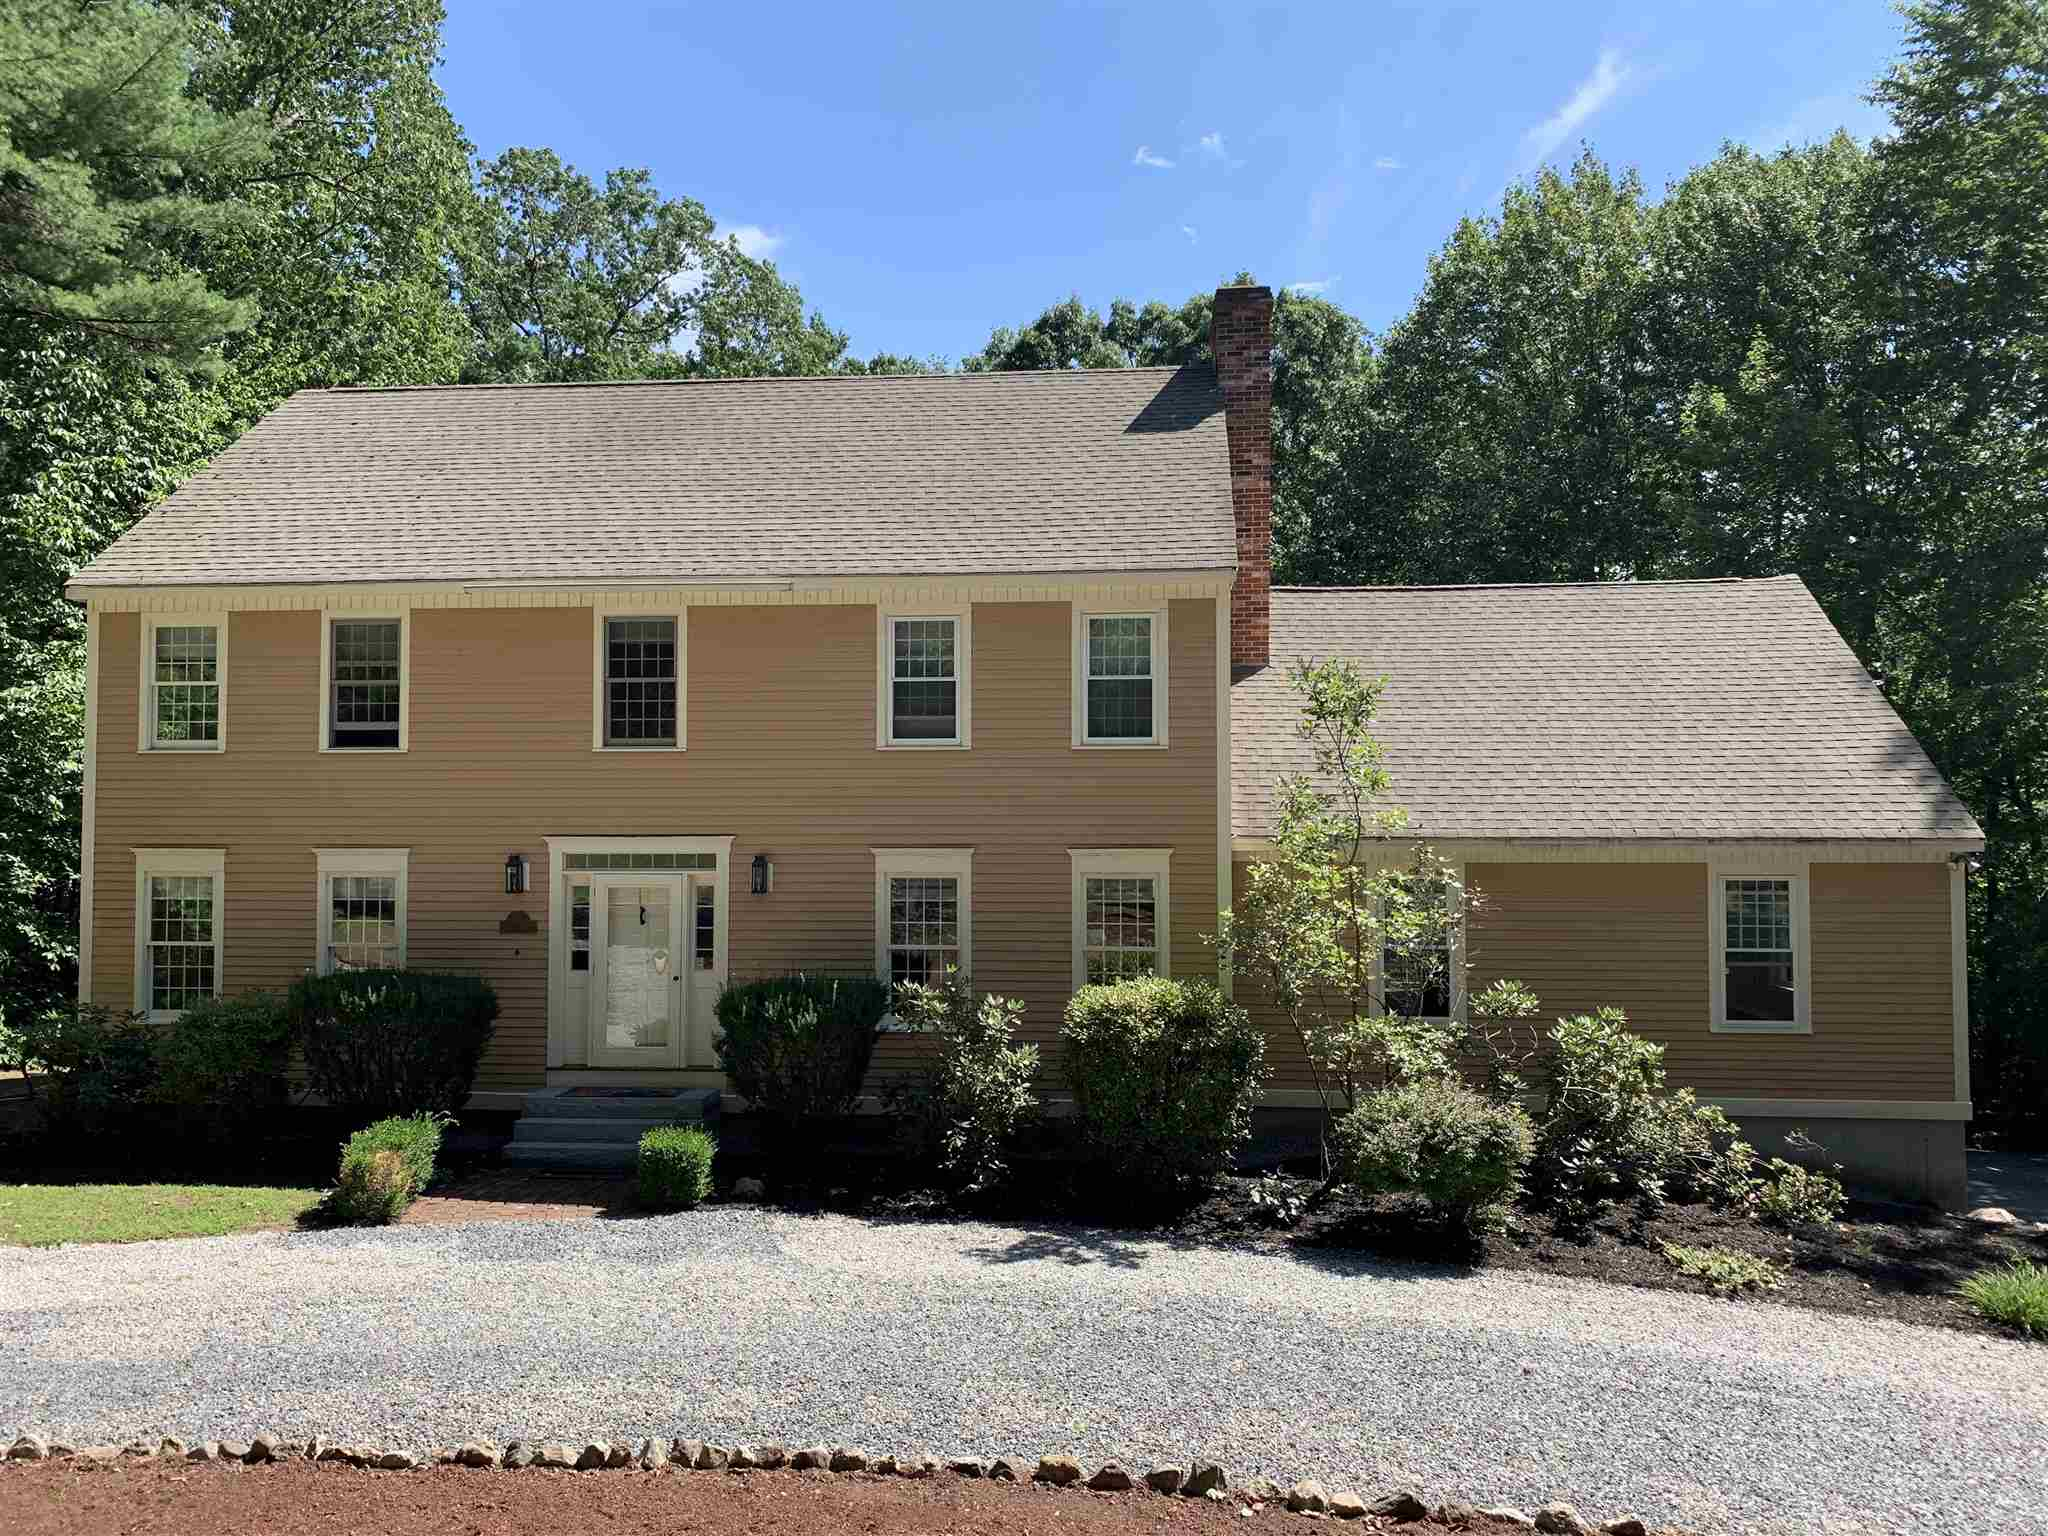 59 Oriole Drive, Bedford, NH 03110